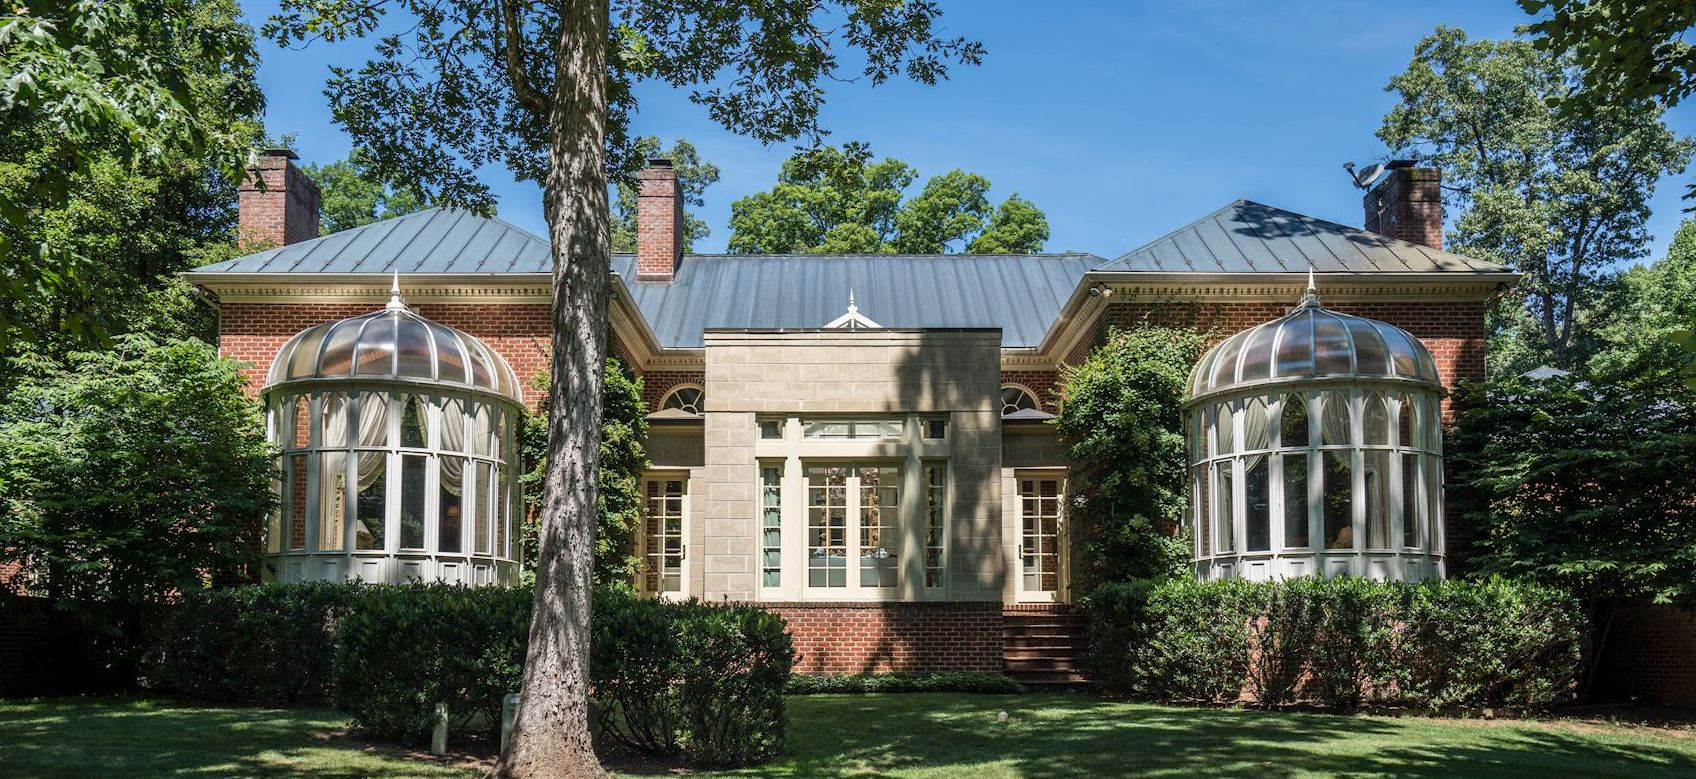 14,000 Sq. Ft. Colonial Revival in Great Falls, VA Reduced to $4.4M (PHOTOS)